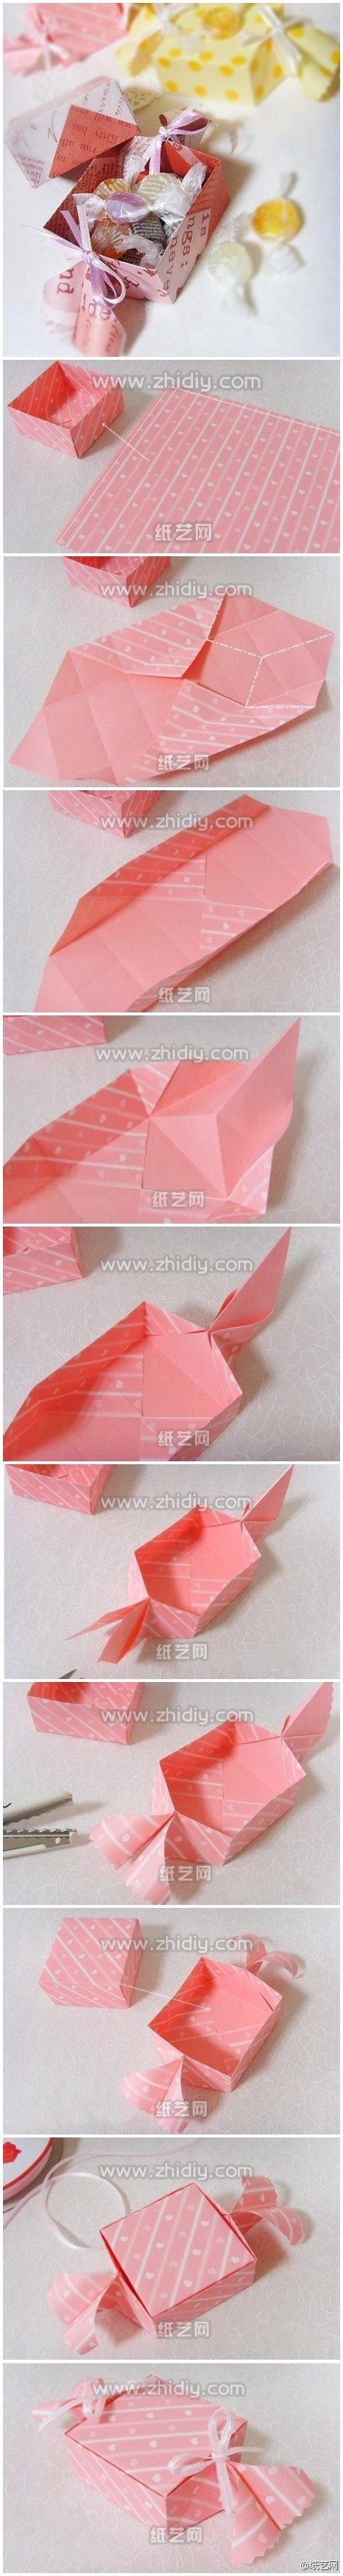 How to make an Origami Box ♢ Origami Candy Dish Instructions ... | 3501x466